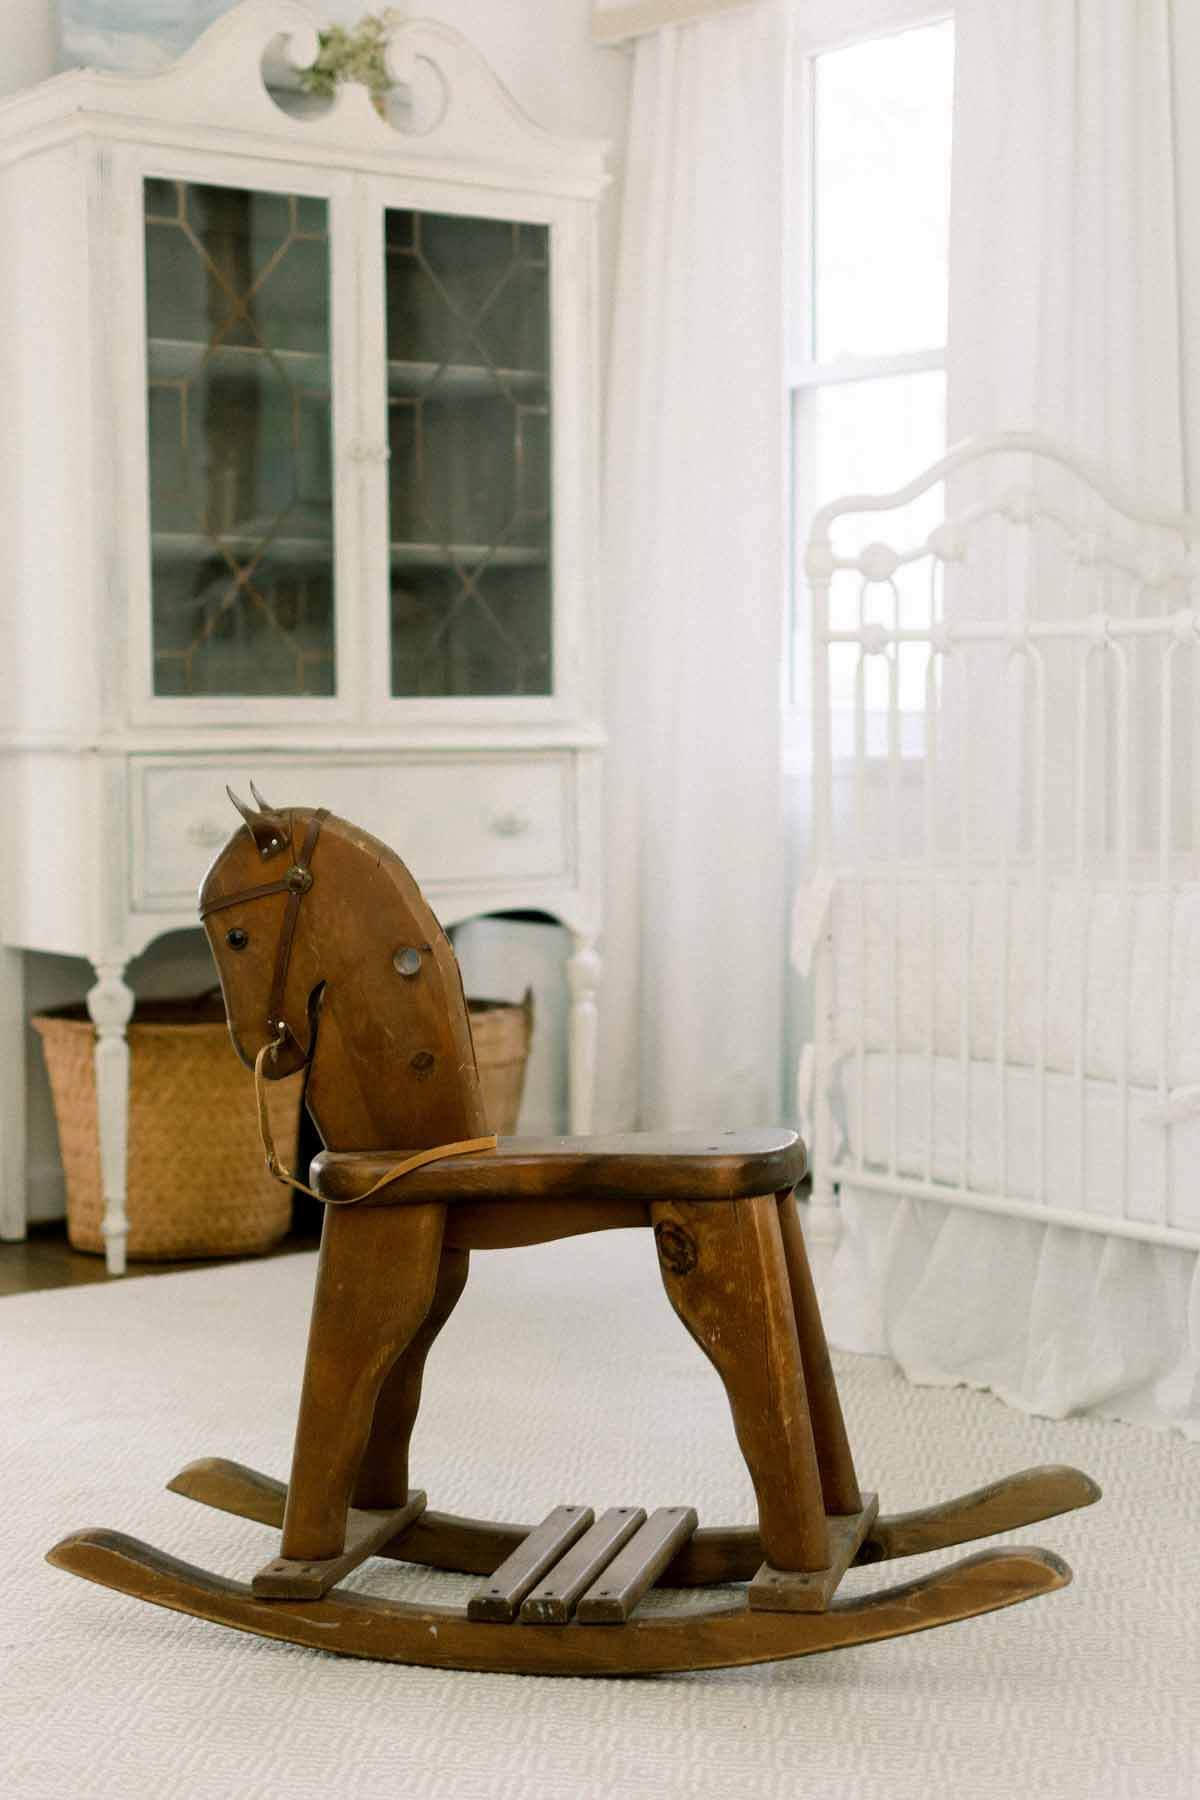 Rocking horse from Sozo Trading Co.